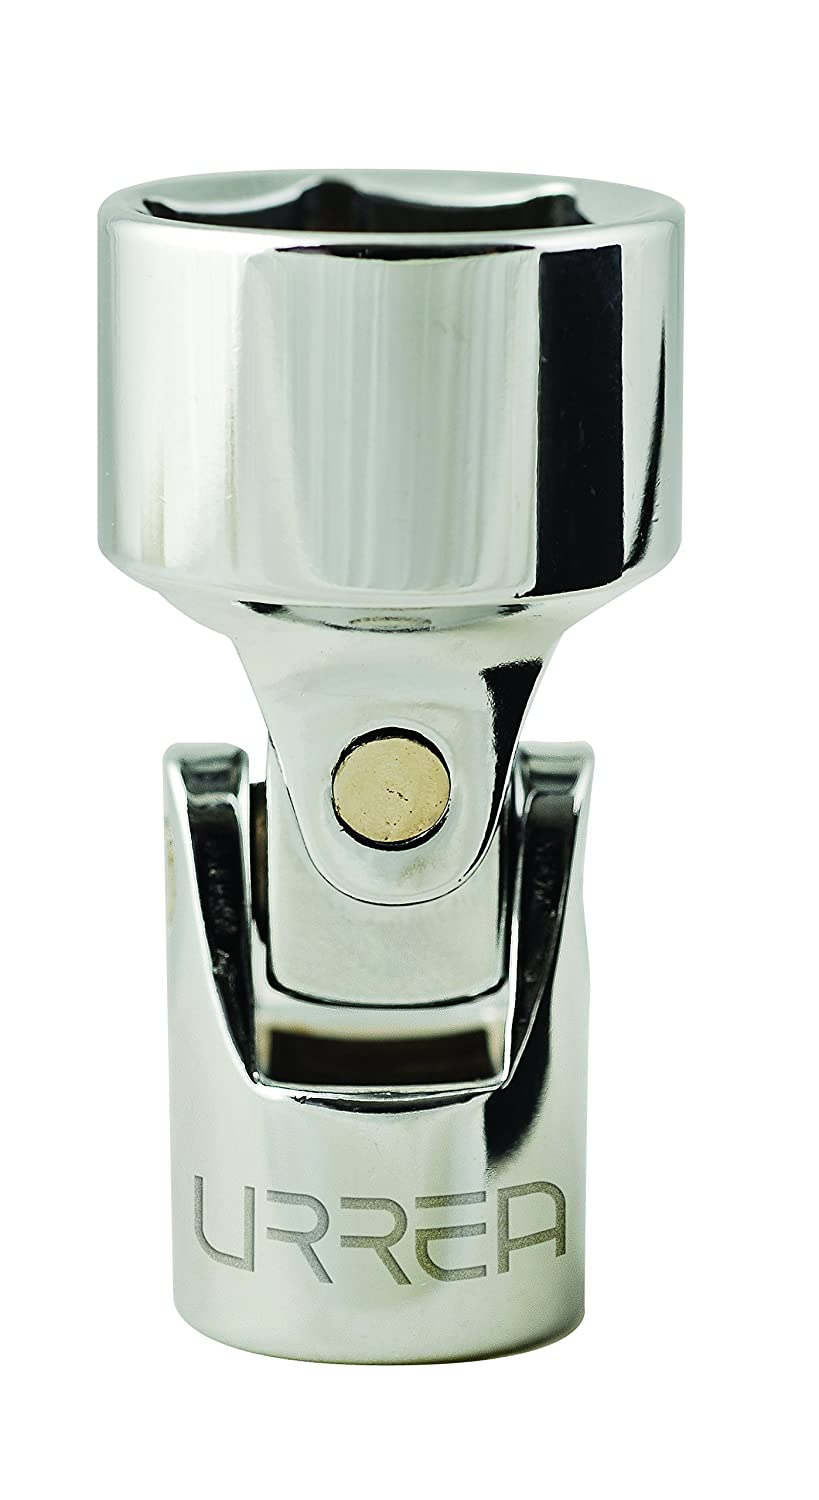 Urrea 4773 1//4-Inch Drive 6-Point with 3//8-Inch Universal Socket